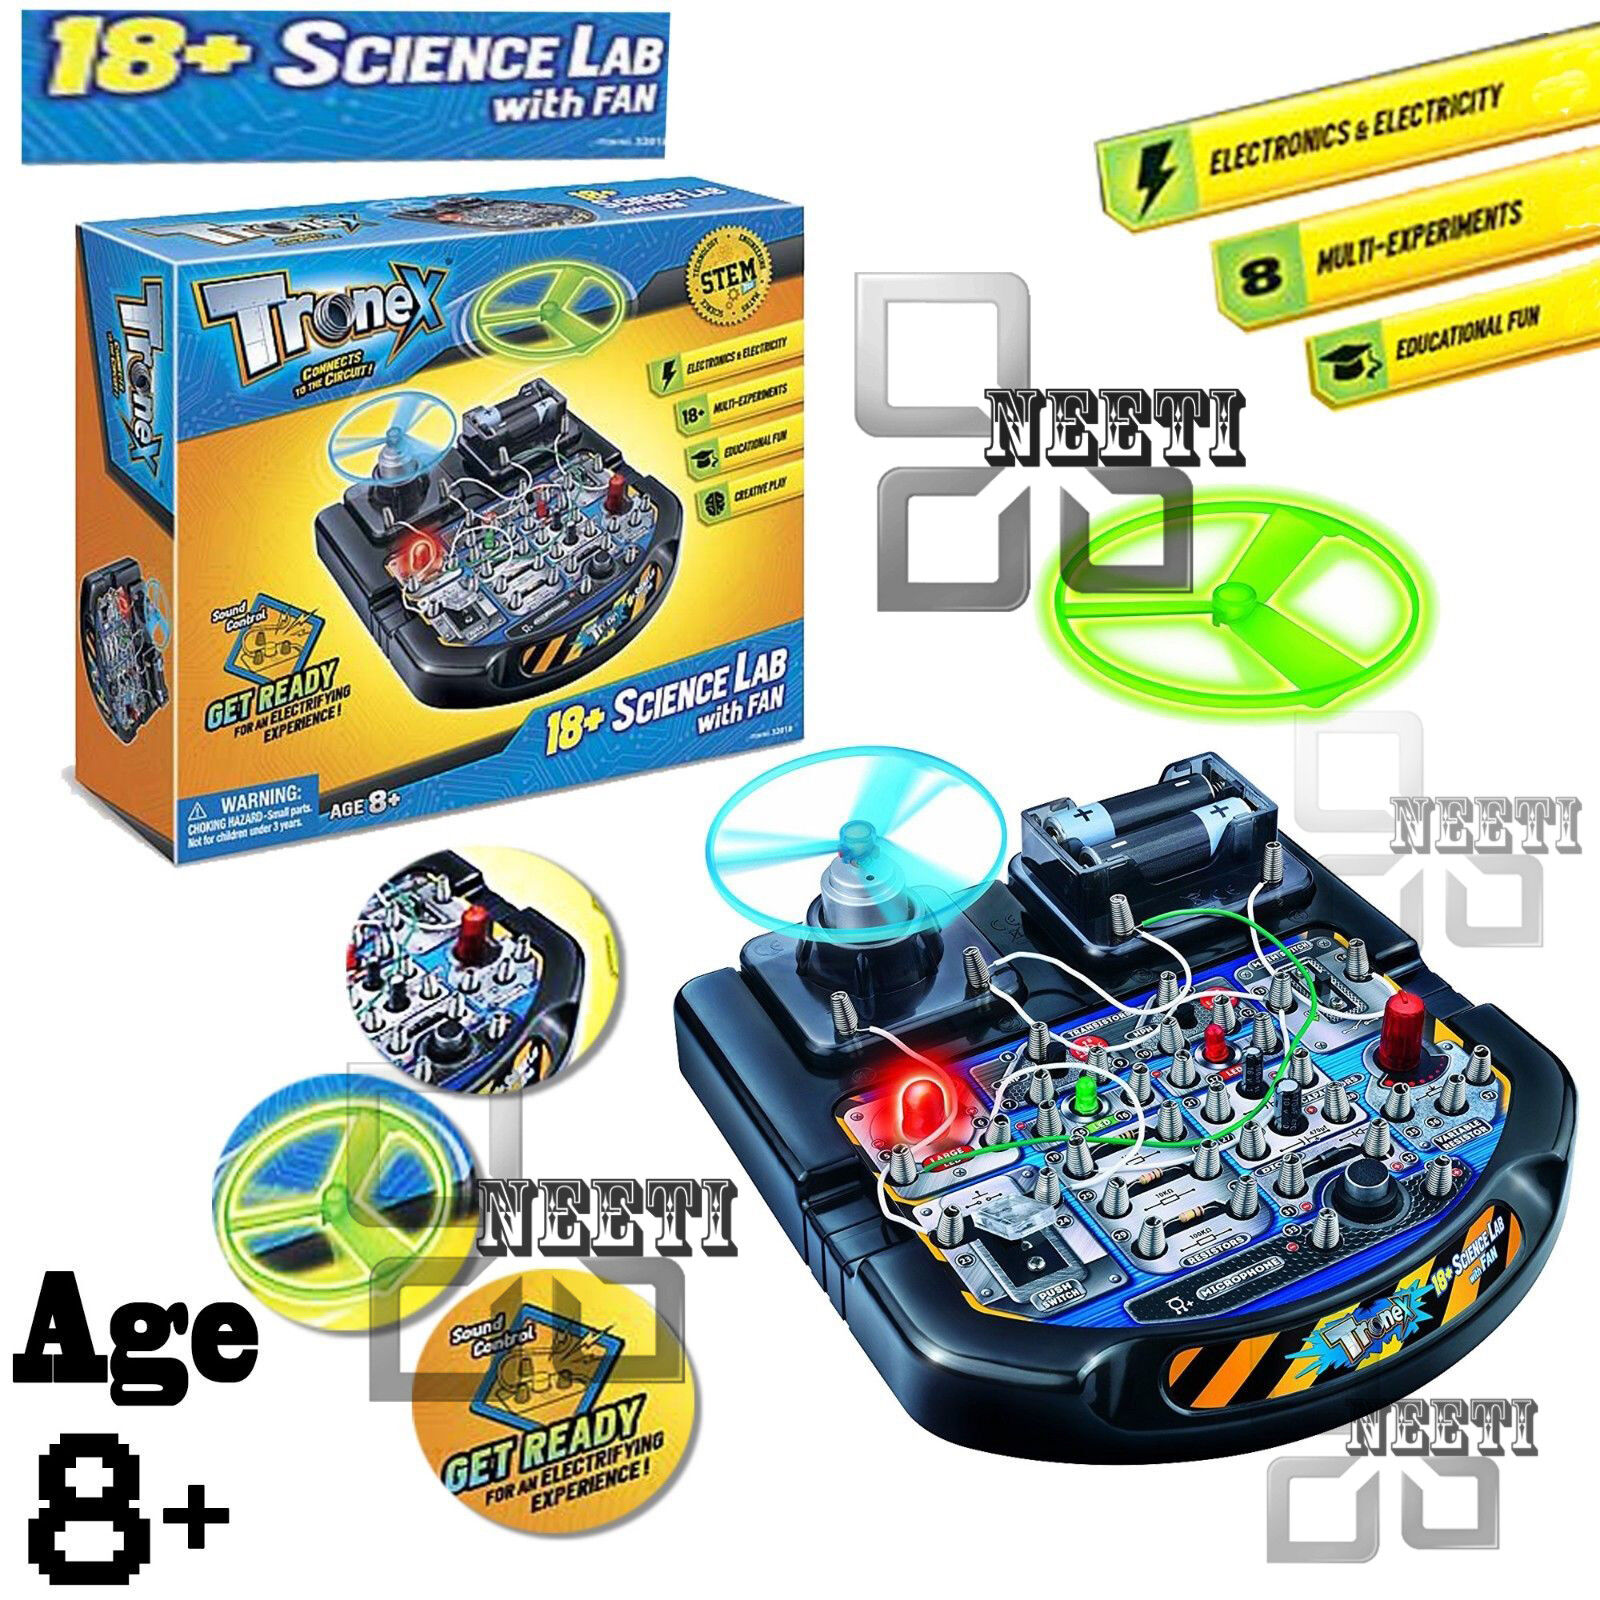 Children Electronic Educational 18 Science Experiment Lab Tronex Circuits For Kids Picture 2